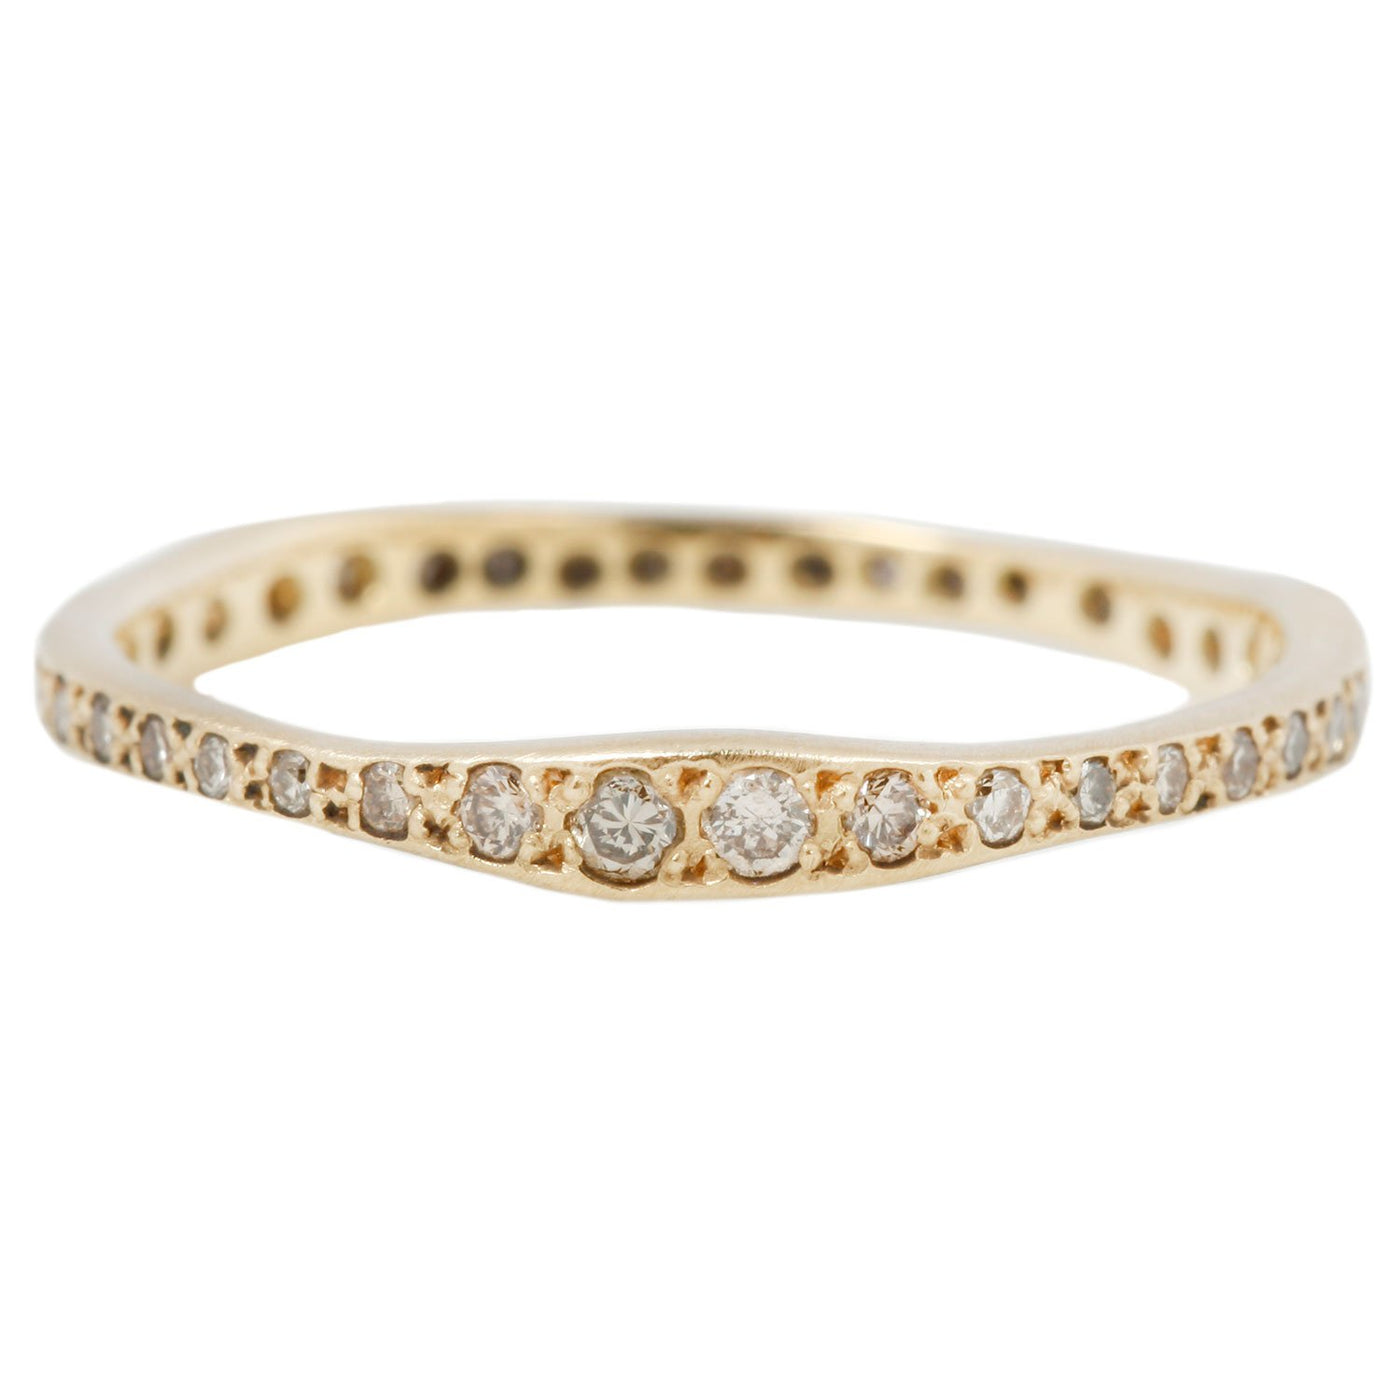 Satomi Kawakita Brown Diamond Ripple Eternity Band